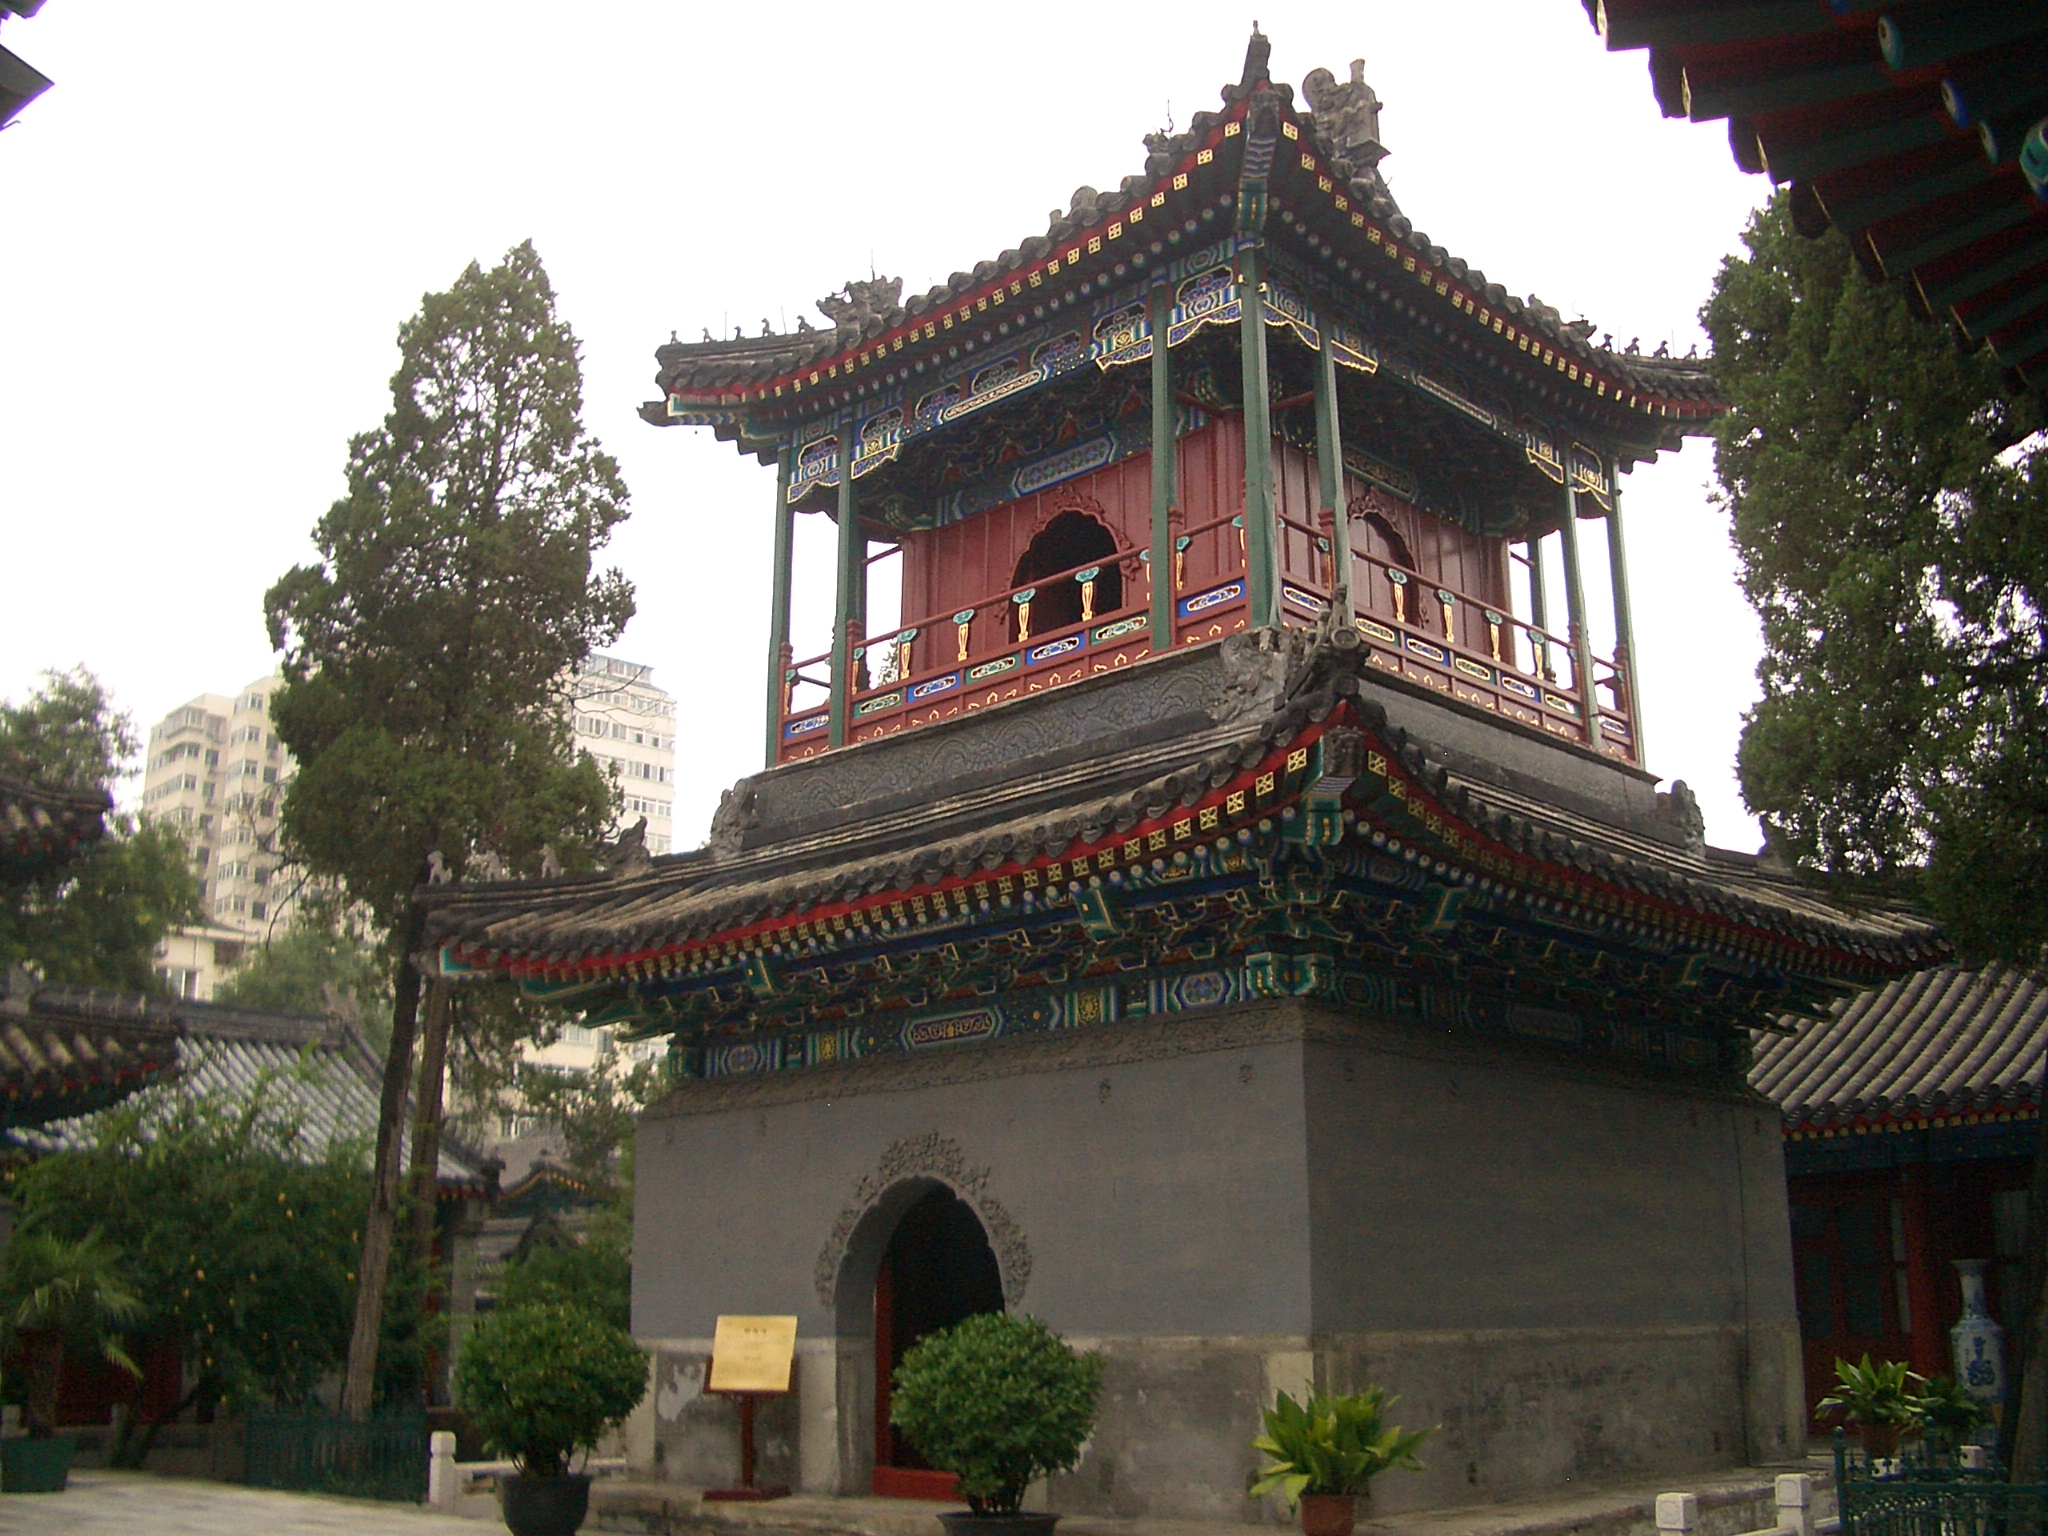 New Zealand Mosque Wikipedia: What Are Some Famous Mosques In China?